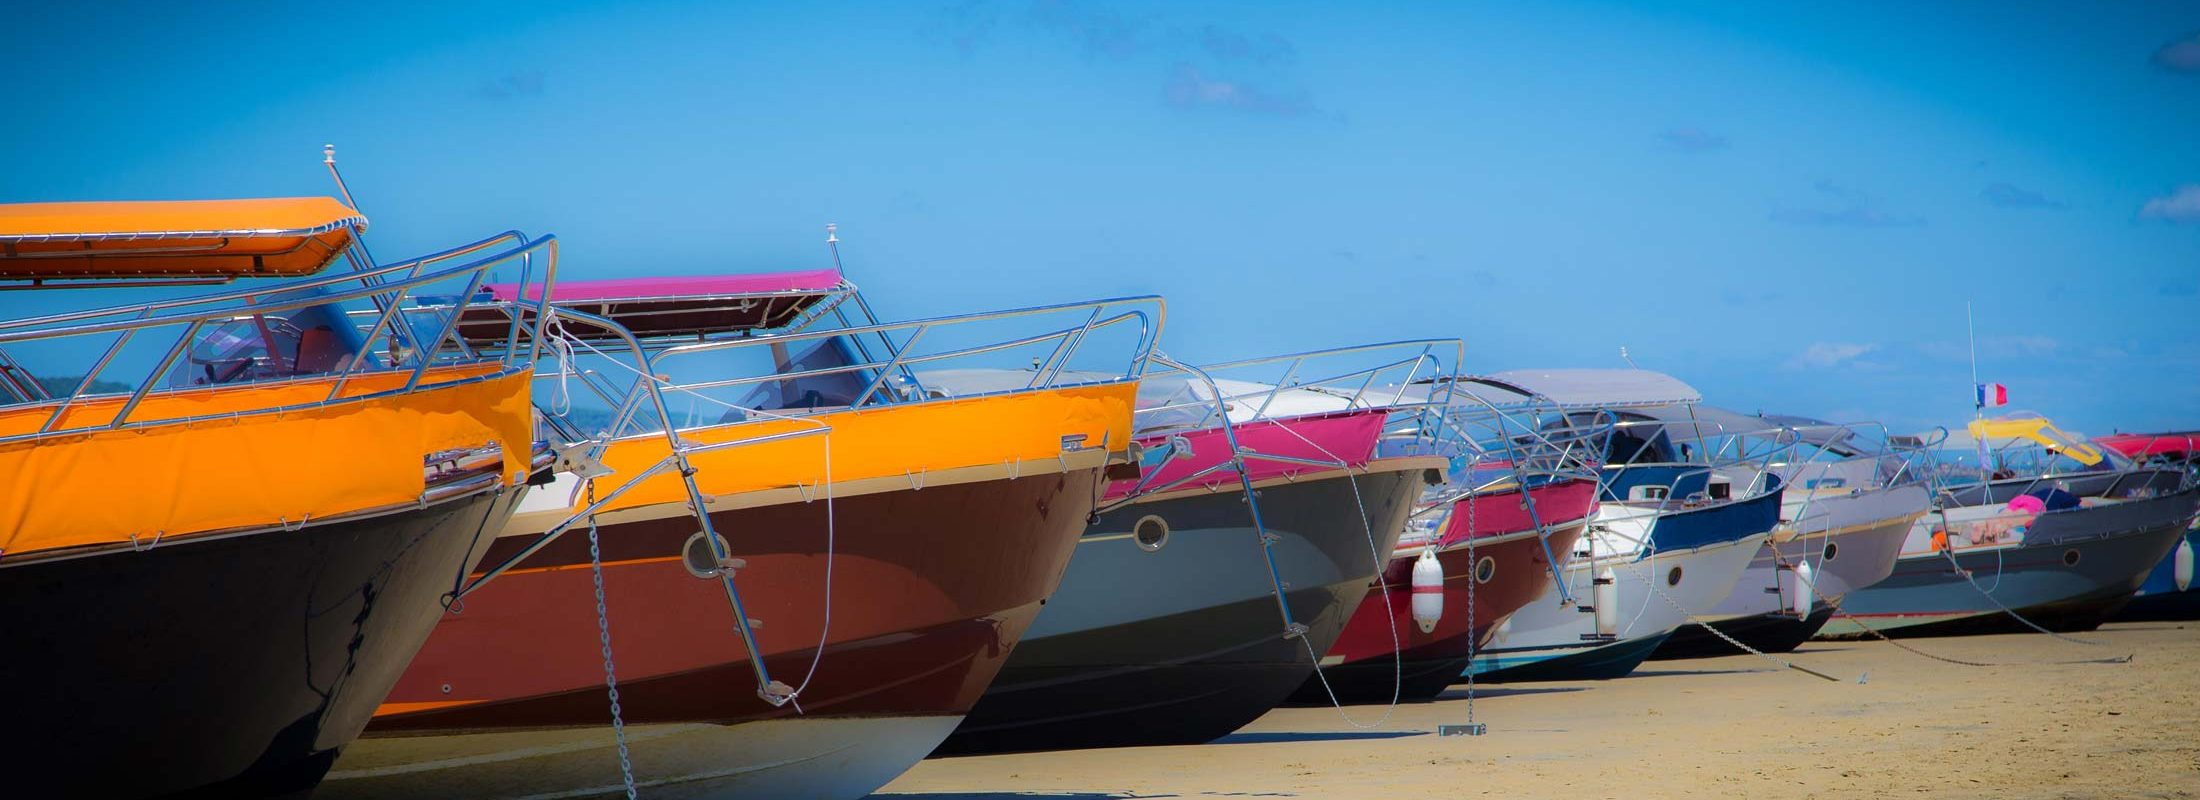 beacher-couleurs